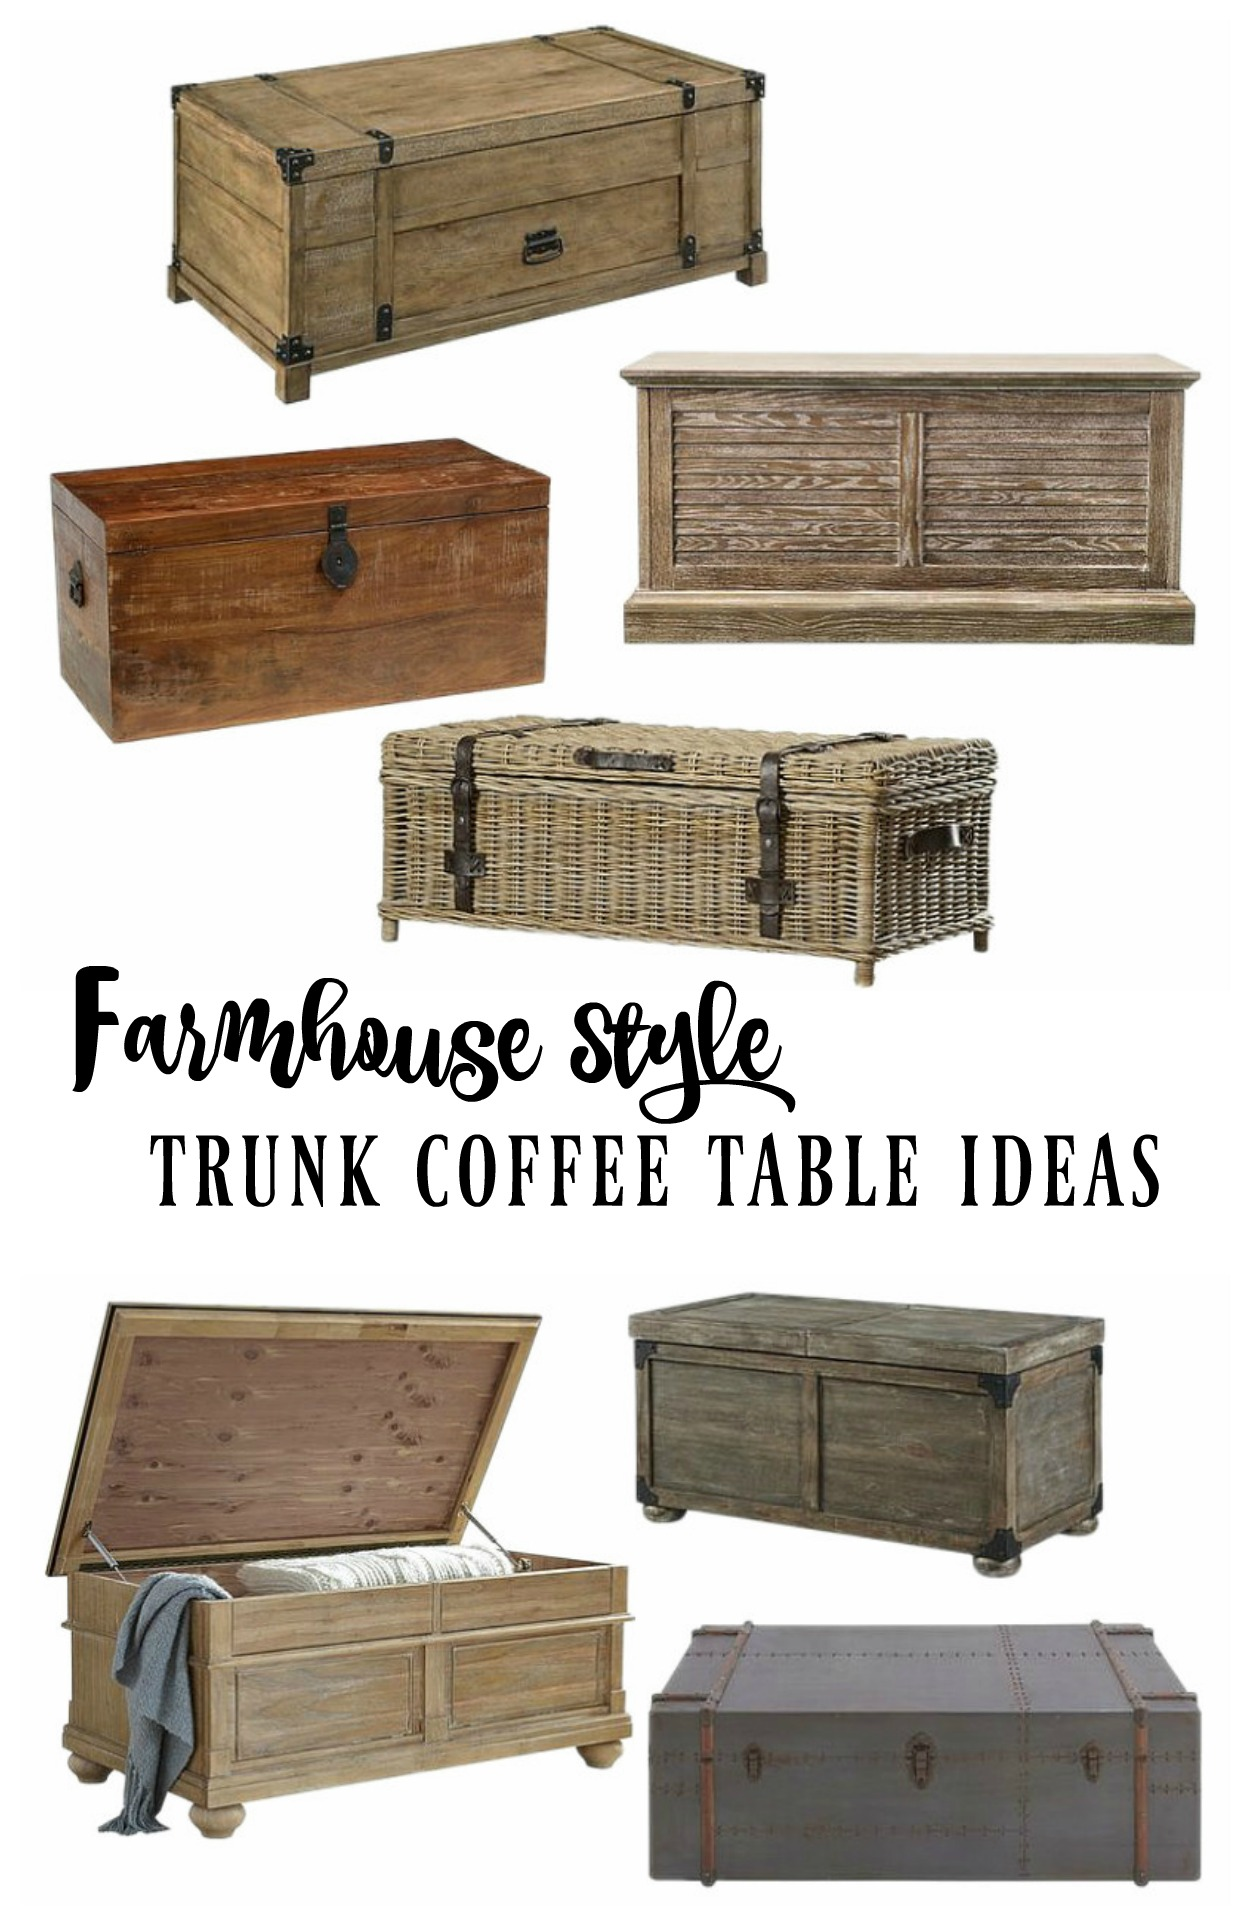 farmhouse style wooden trunk coffee table ideas rooms for rent blog. Black Bedroom Furniture Sets. Home Design Ideas